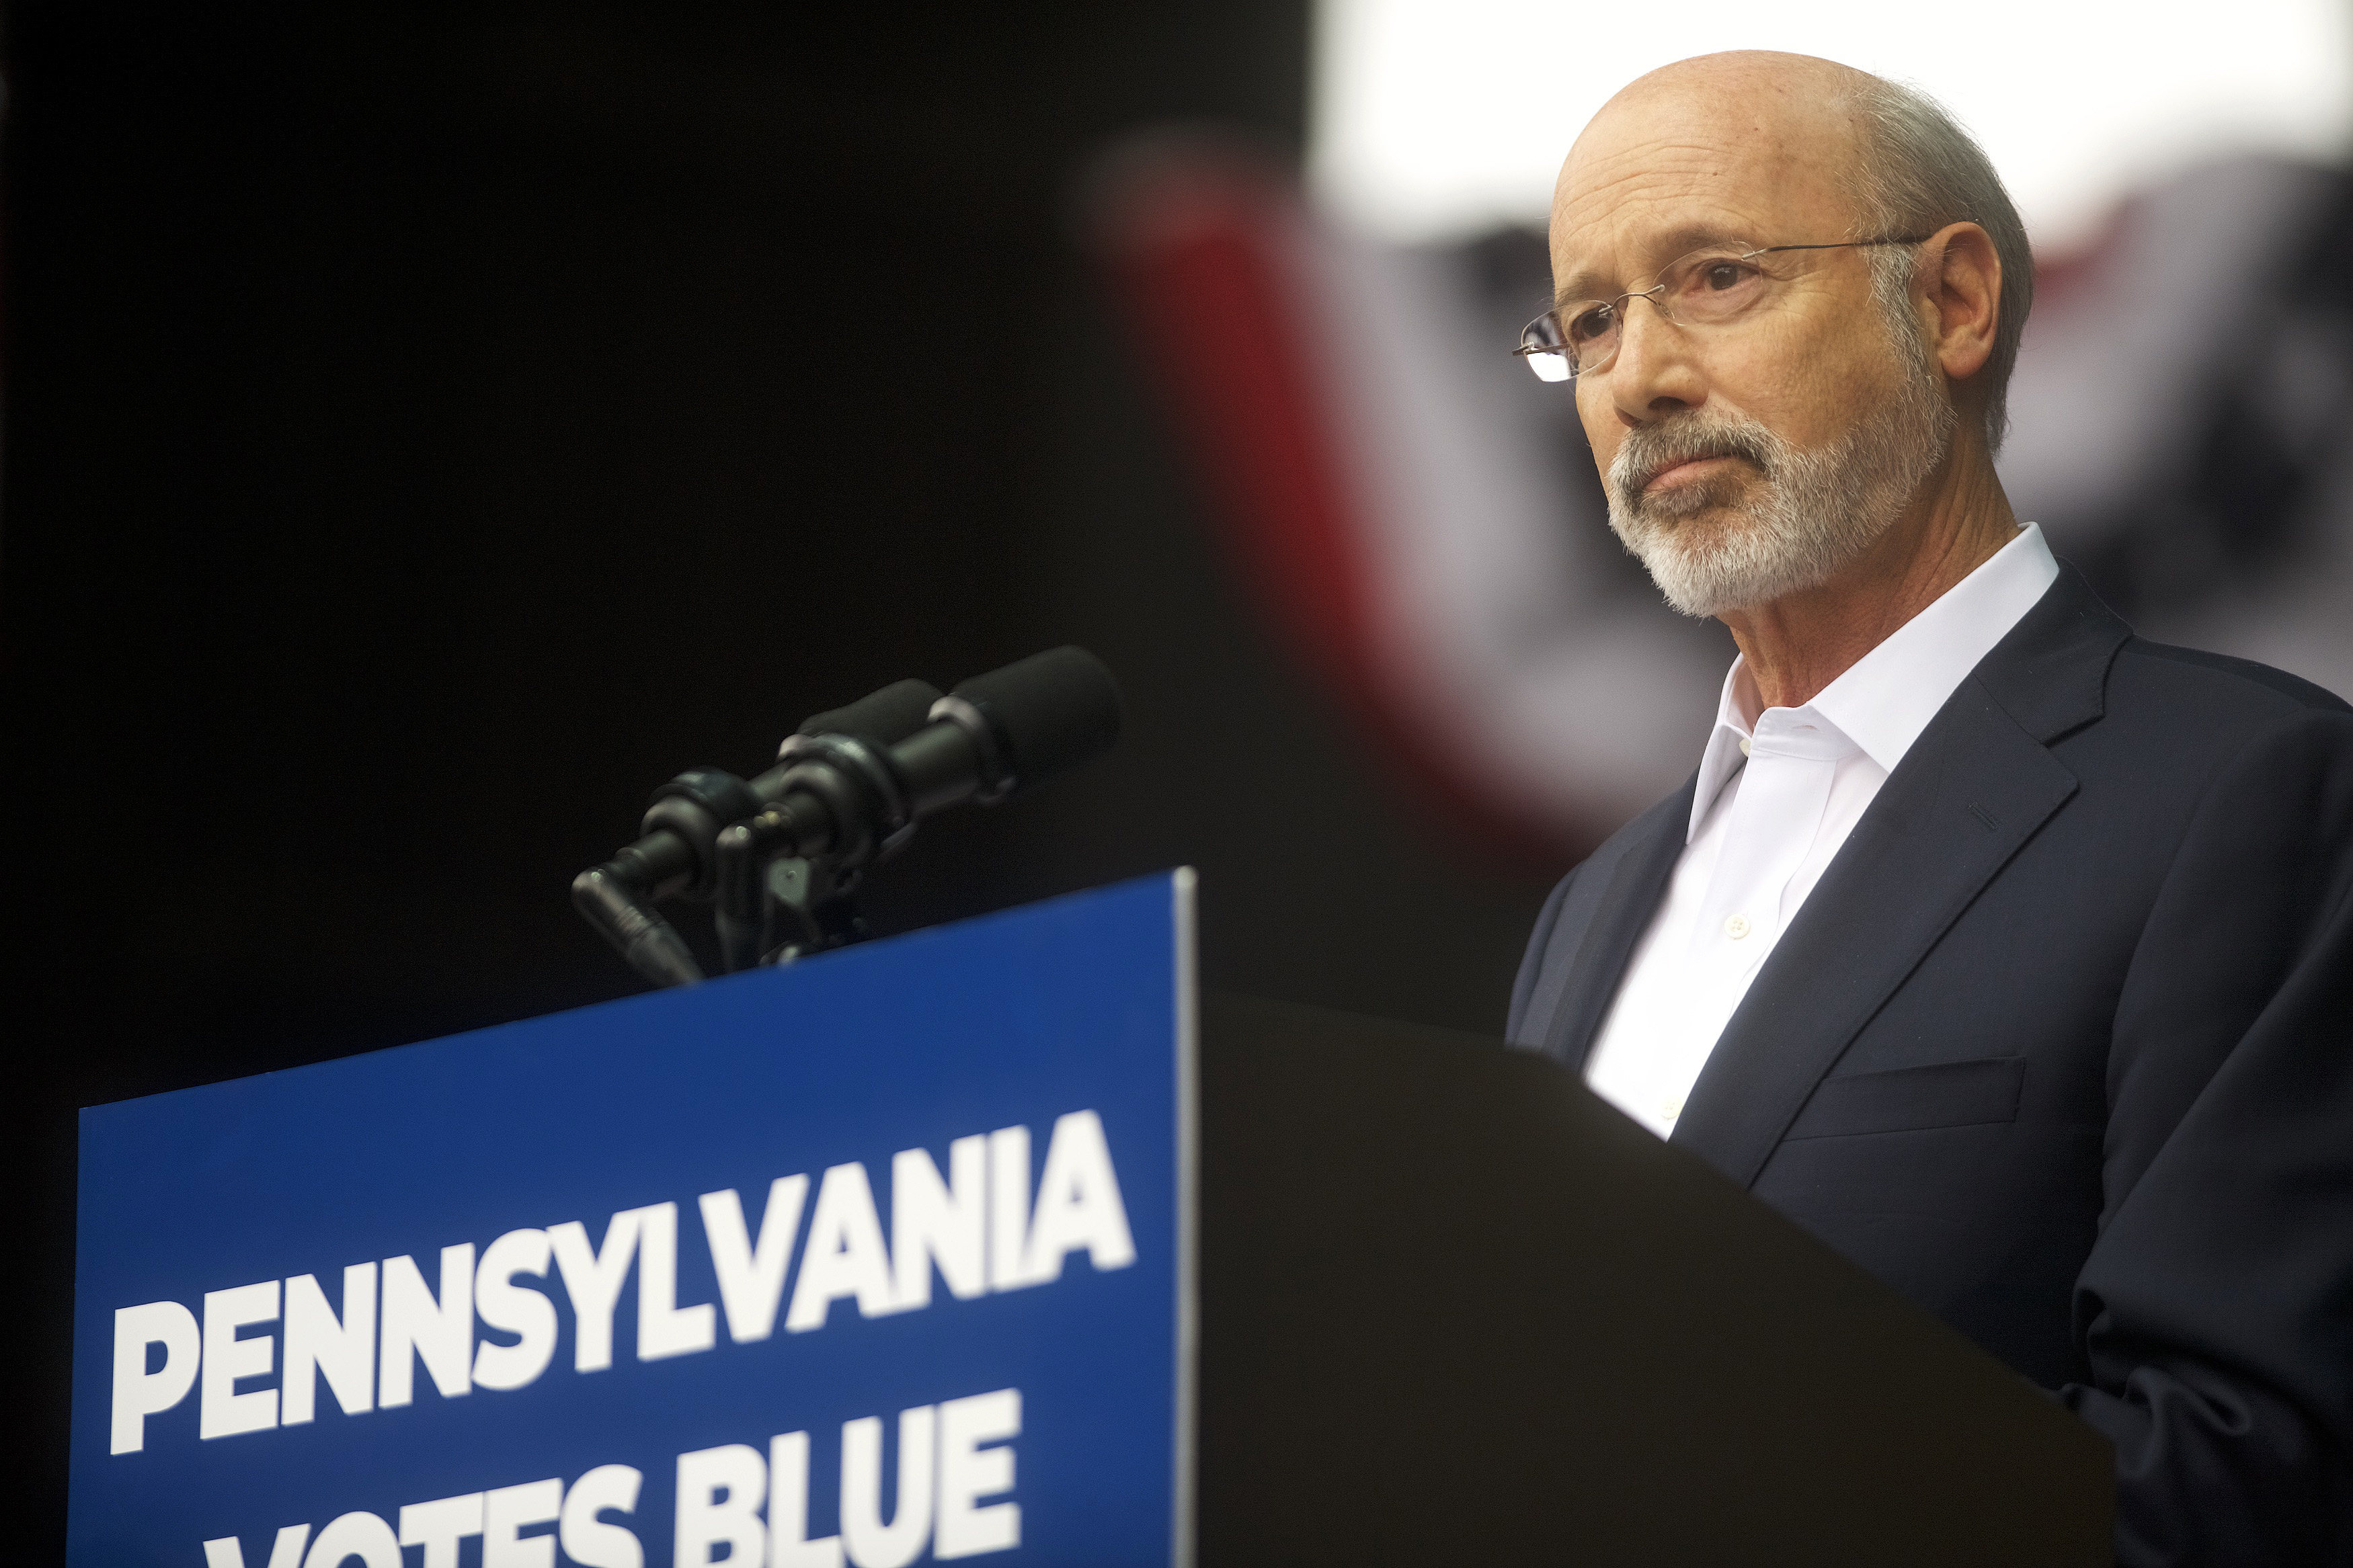 Pennsylvania Governor Tom Wolf addresses supporters before former President Barack Obama speaks during a campaign rally for statewide Democratic candidates on September 21, 2018 in Philadelphia, Pennsylvania. (Photo by Mark Makela/Getty Images)